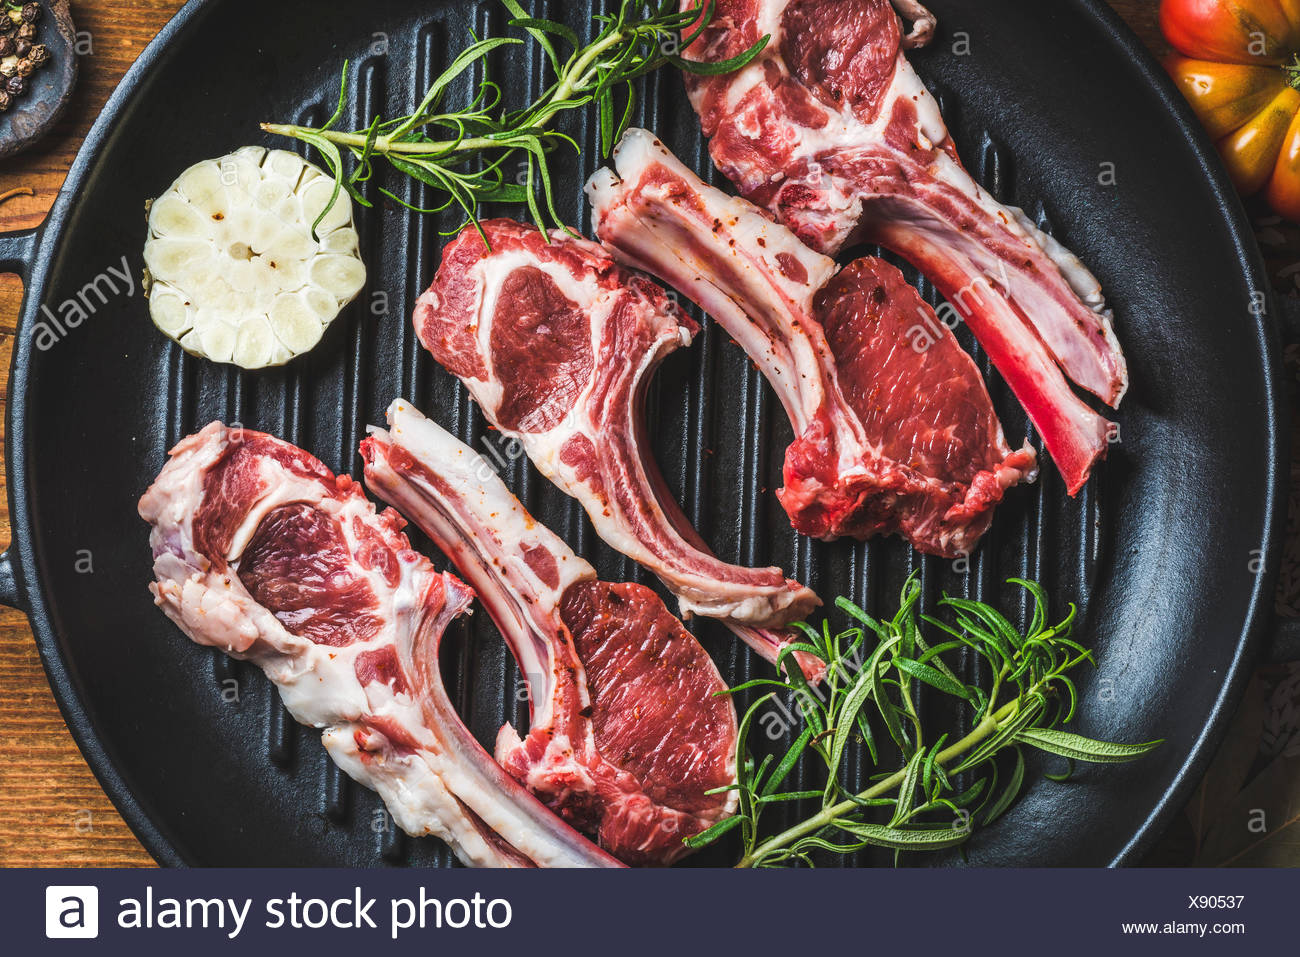 Raw uncooked lamb meat chops with rosemary and garlic in black iron grilling pan, top view, horizontal composition - Stock Image